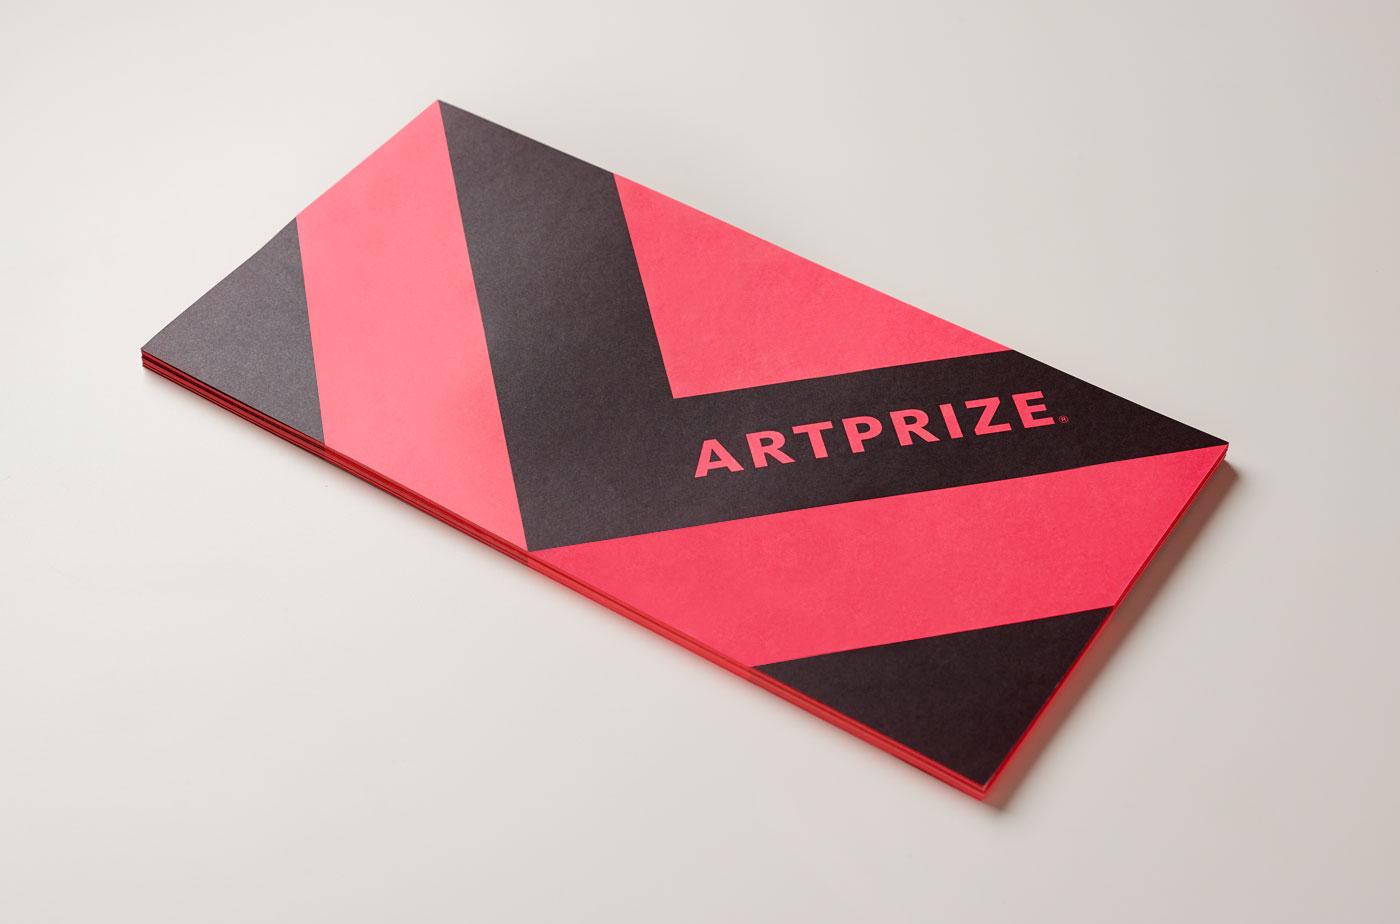 ArtPrize 2012 Promotional Posters